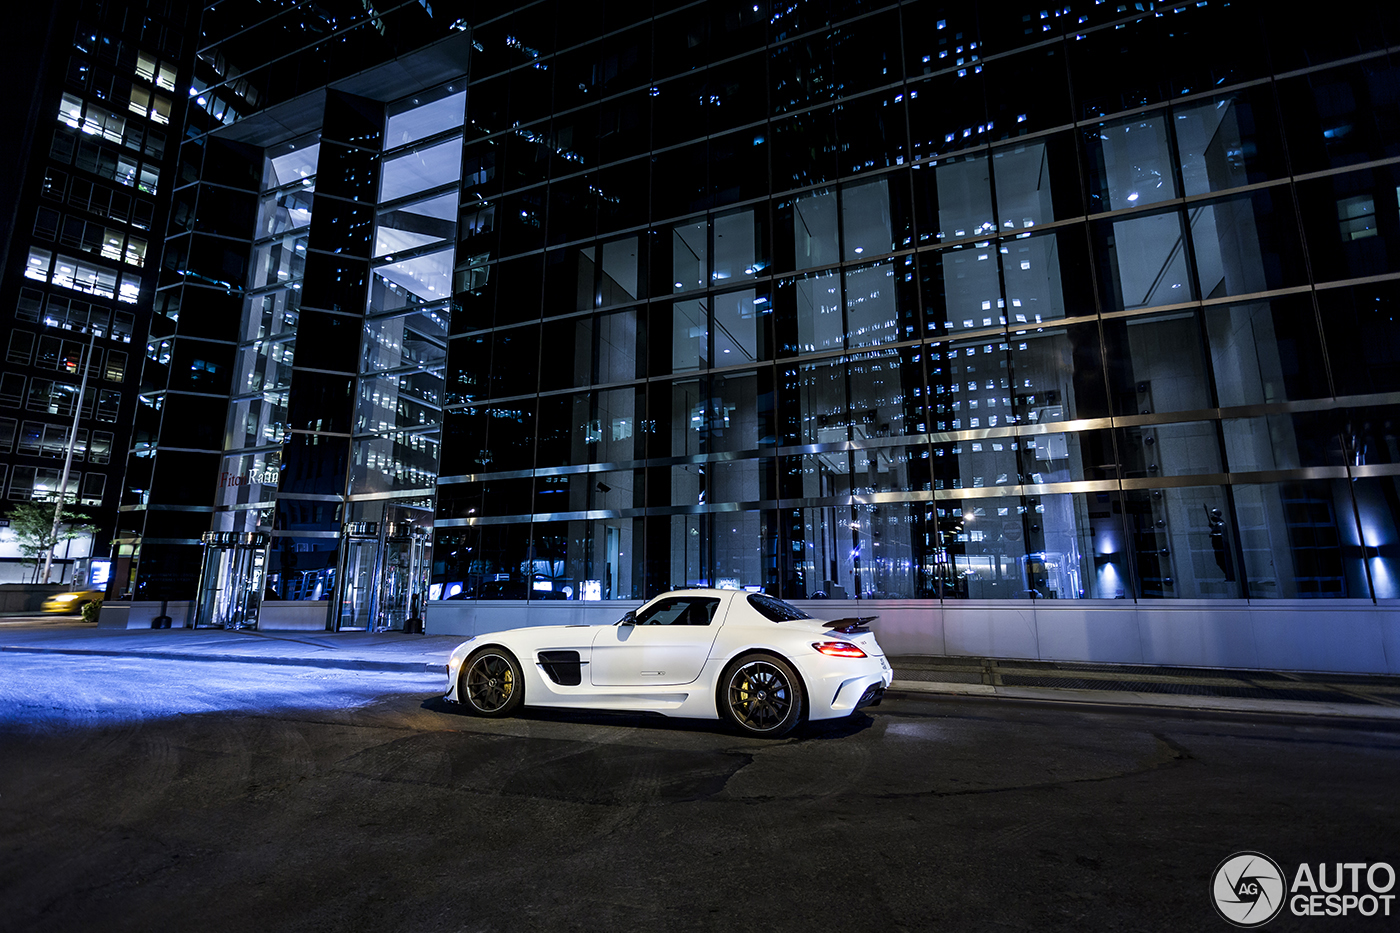 mercedes benz sls amg black series in new york city at night